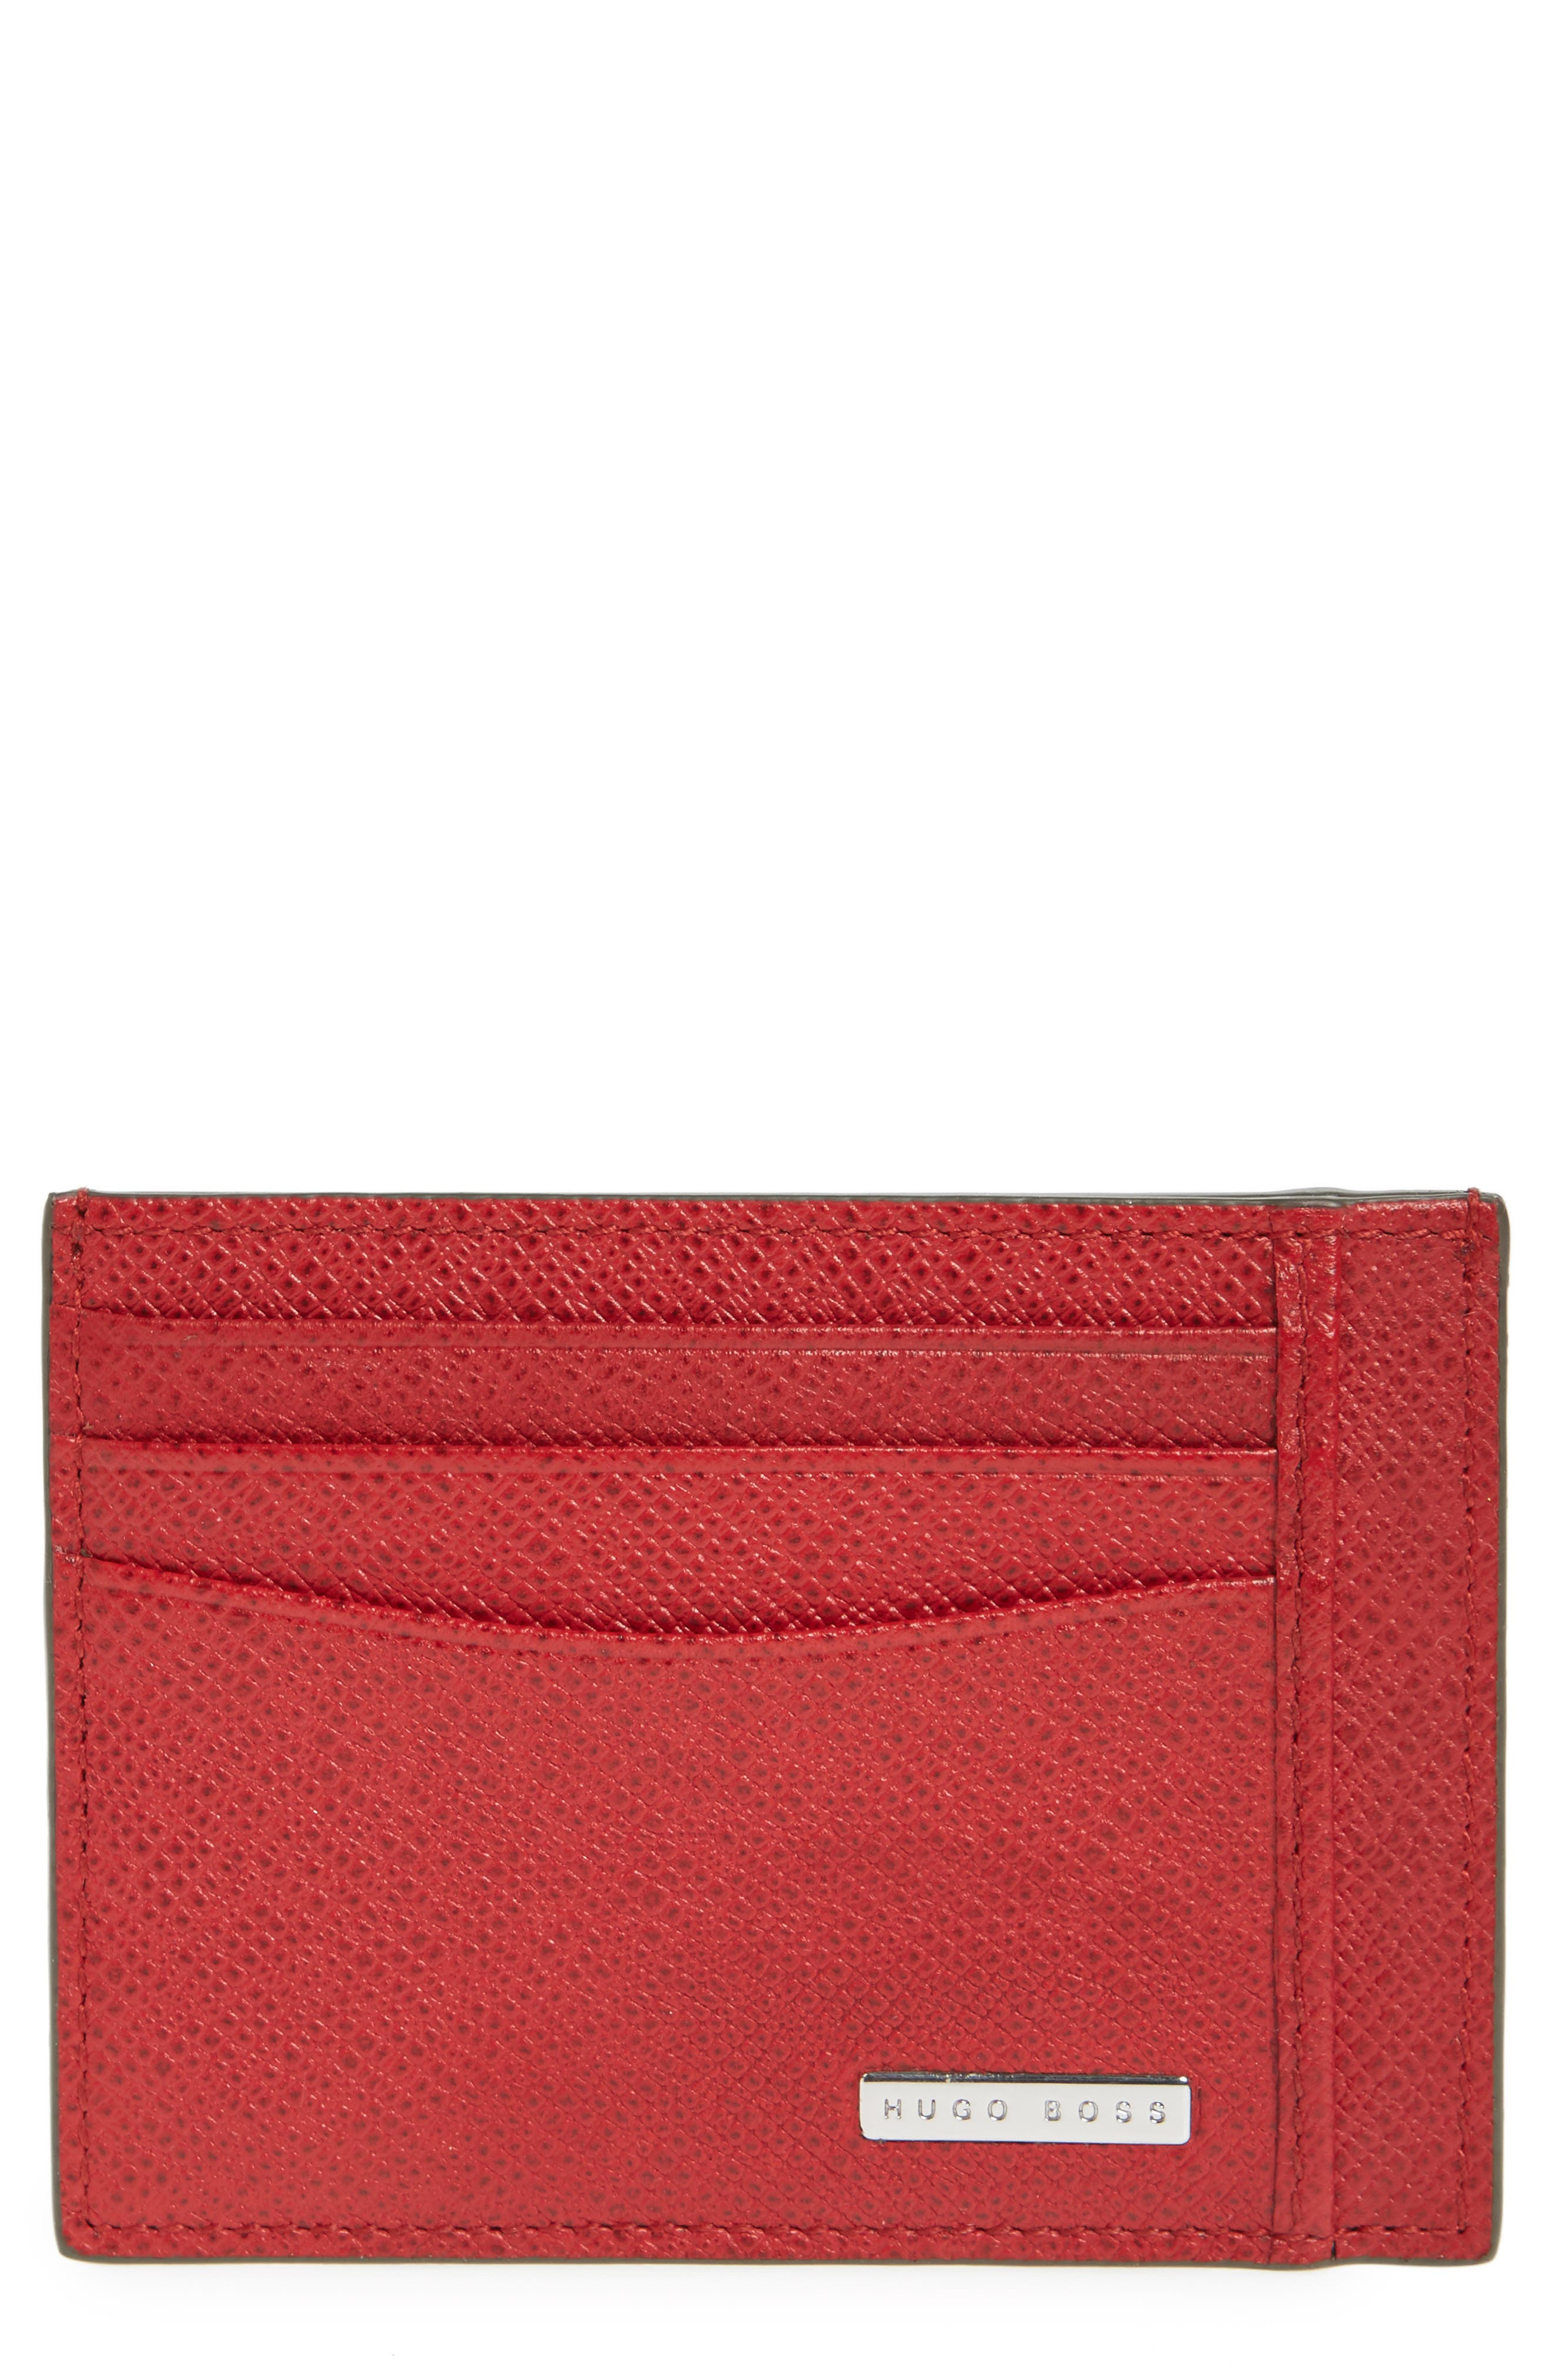 Signature Leather Card Case,                             Main thumbnail 1, color,                             MEDIUM RED